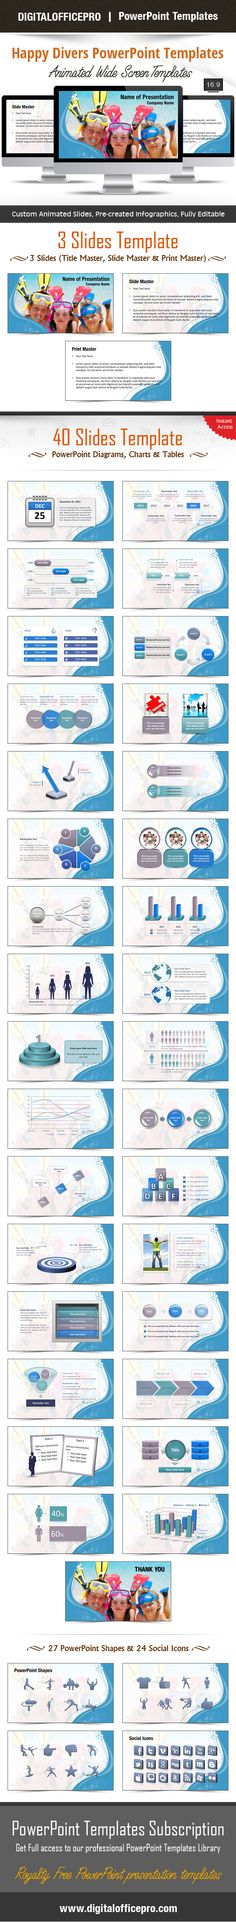 Impress and Engage your audience with Happy Divers PowerPoint Template and Happy Divers PowerPoint Backgrounds from DigitalOfficePro. Each template comes with a set of PowerPoint Diagrams, Charts & Shapes and are available for instant download.